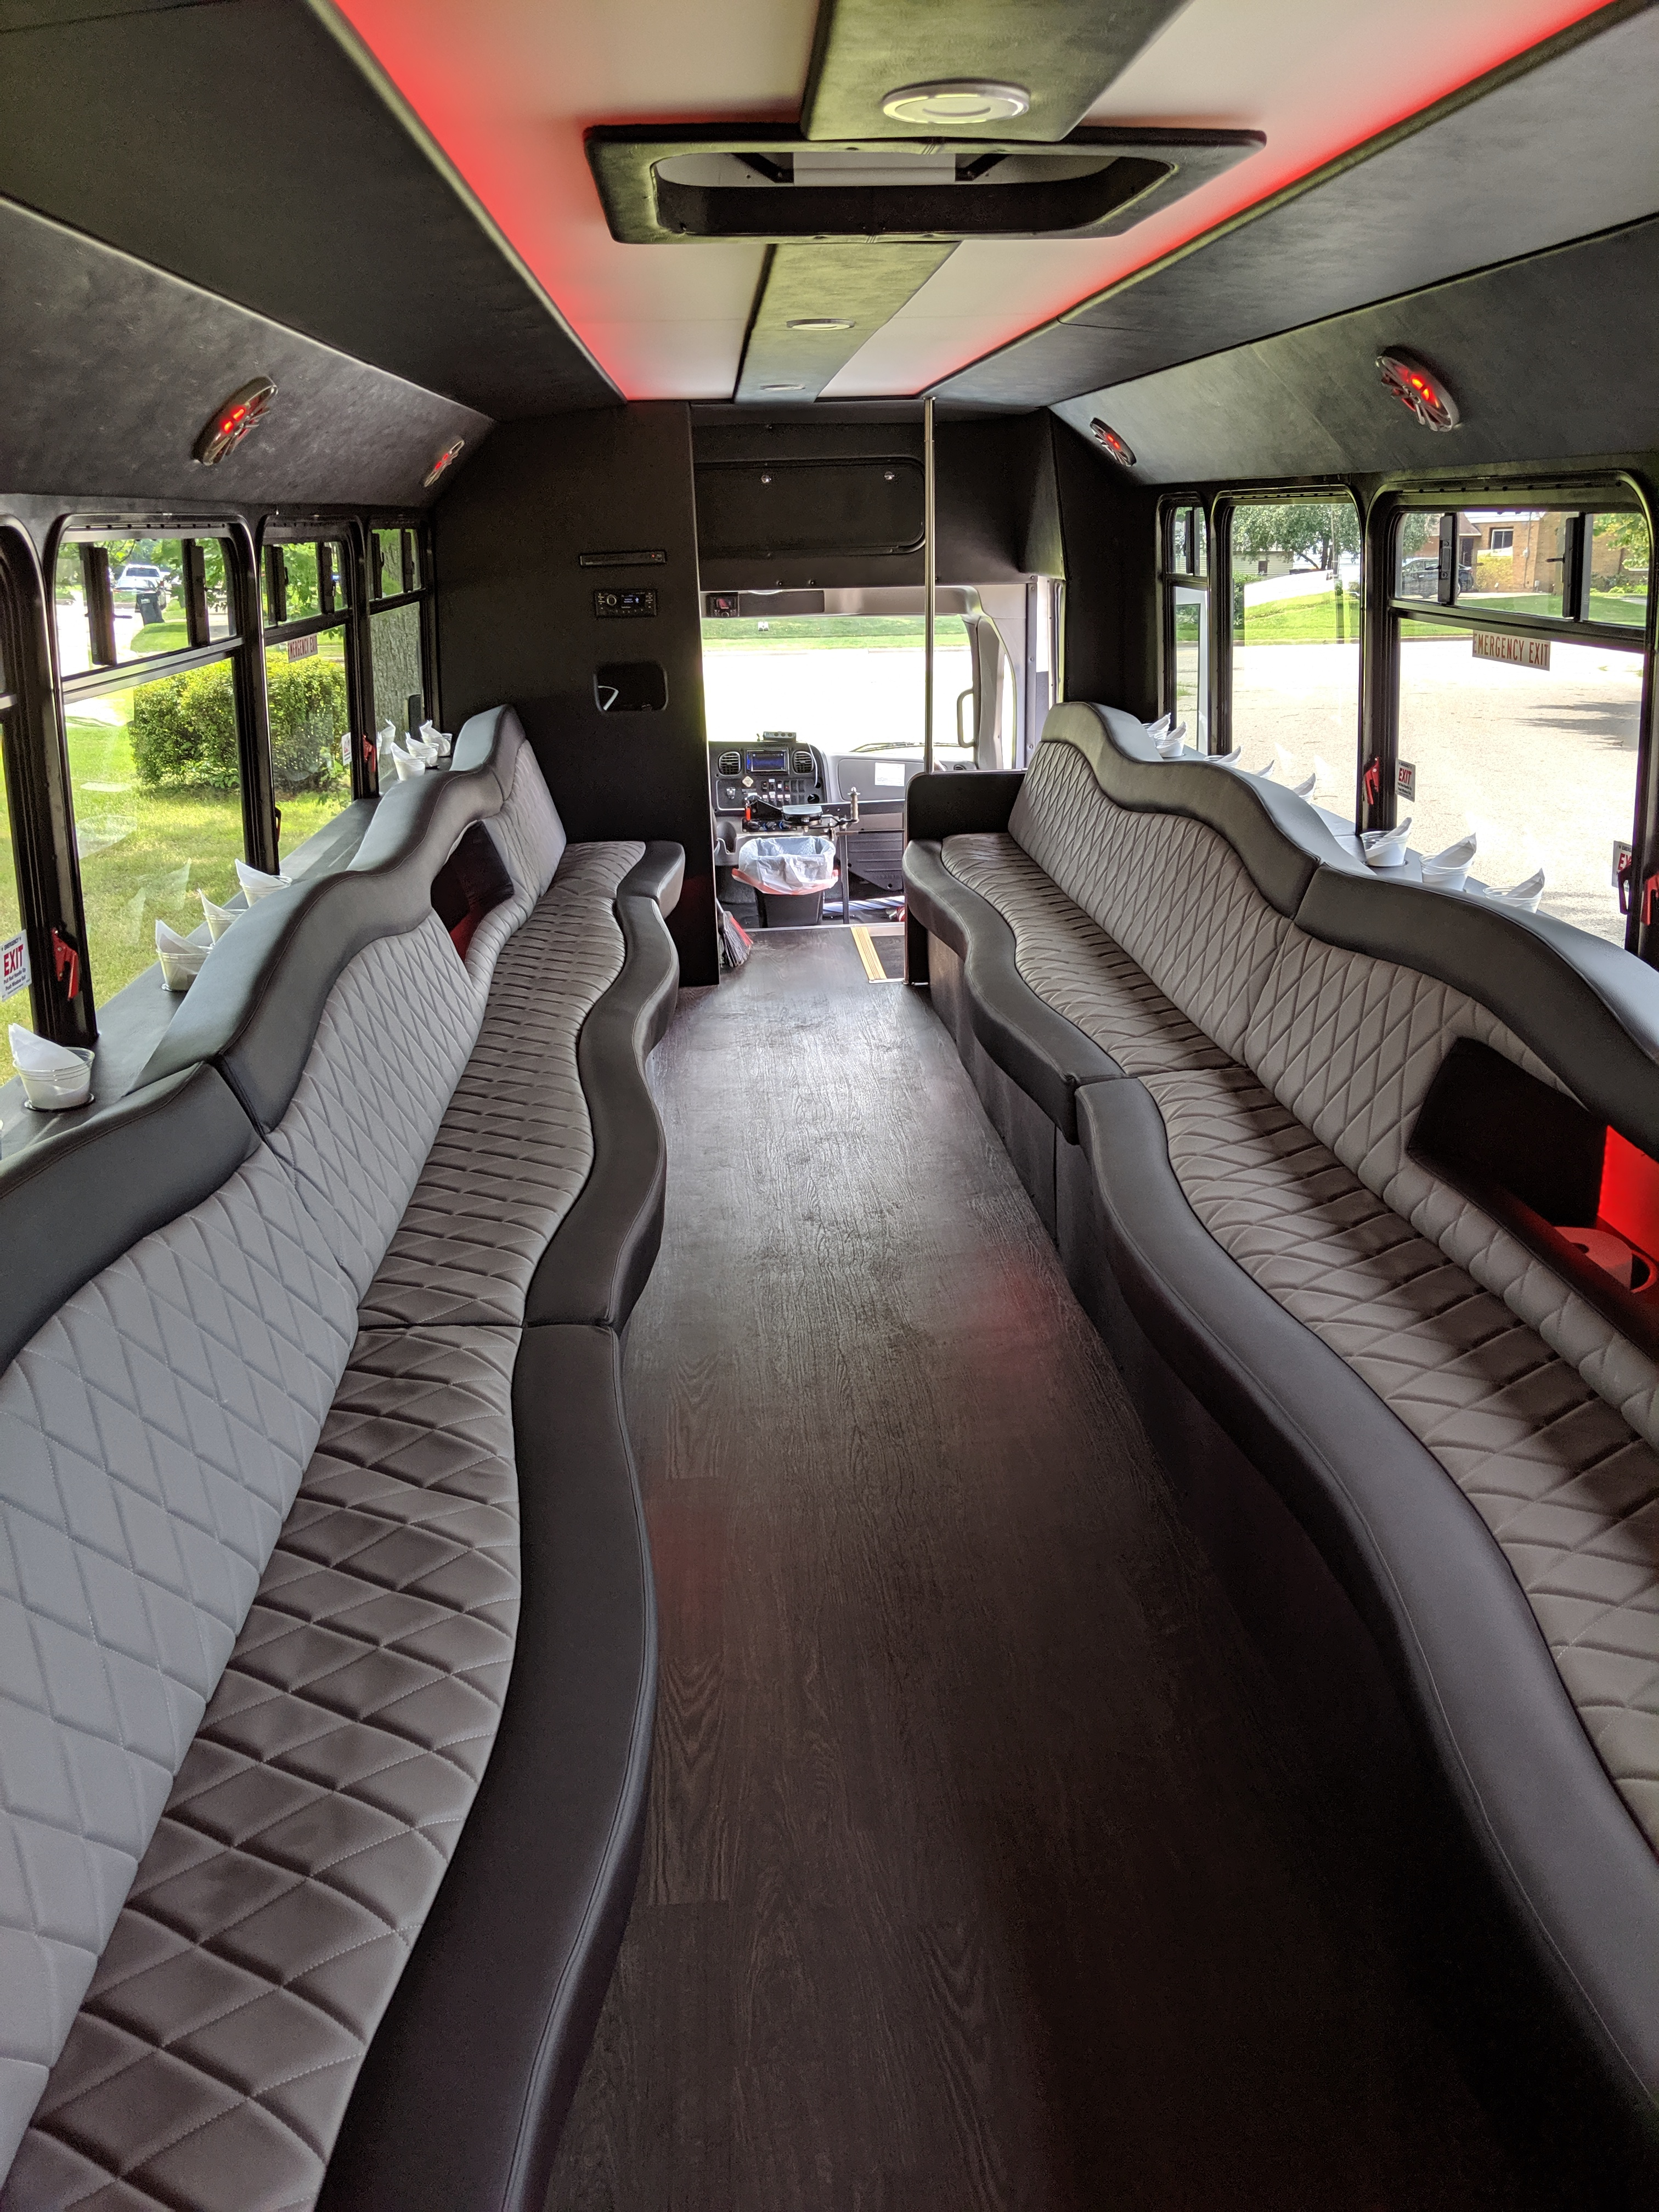 30 Passenger Luxury Limo Bus Interior 5